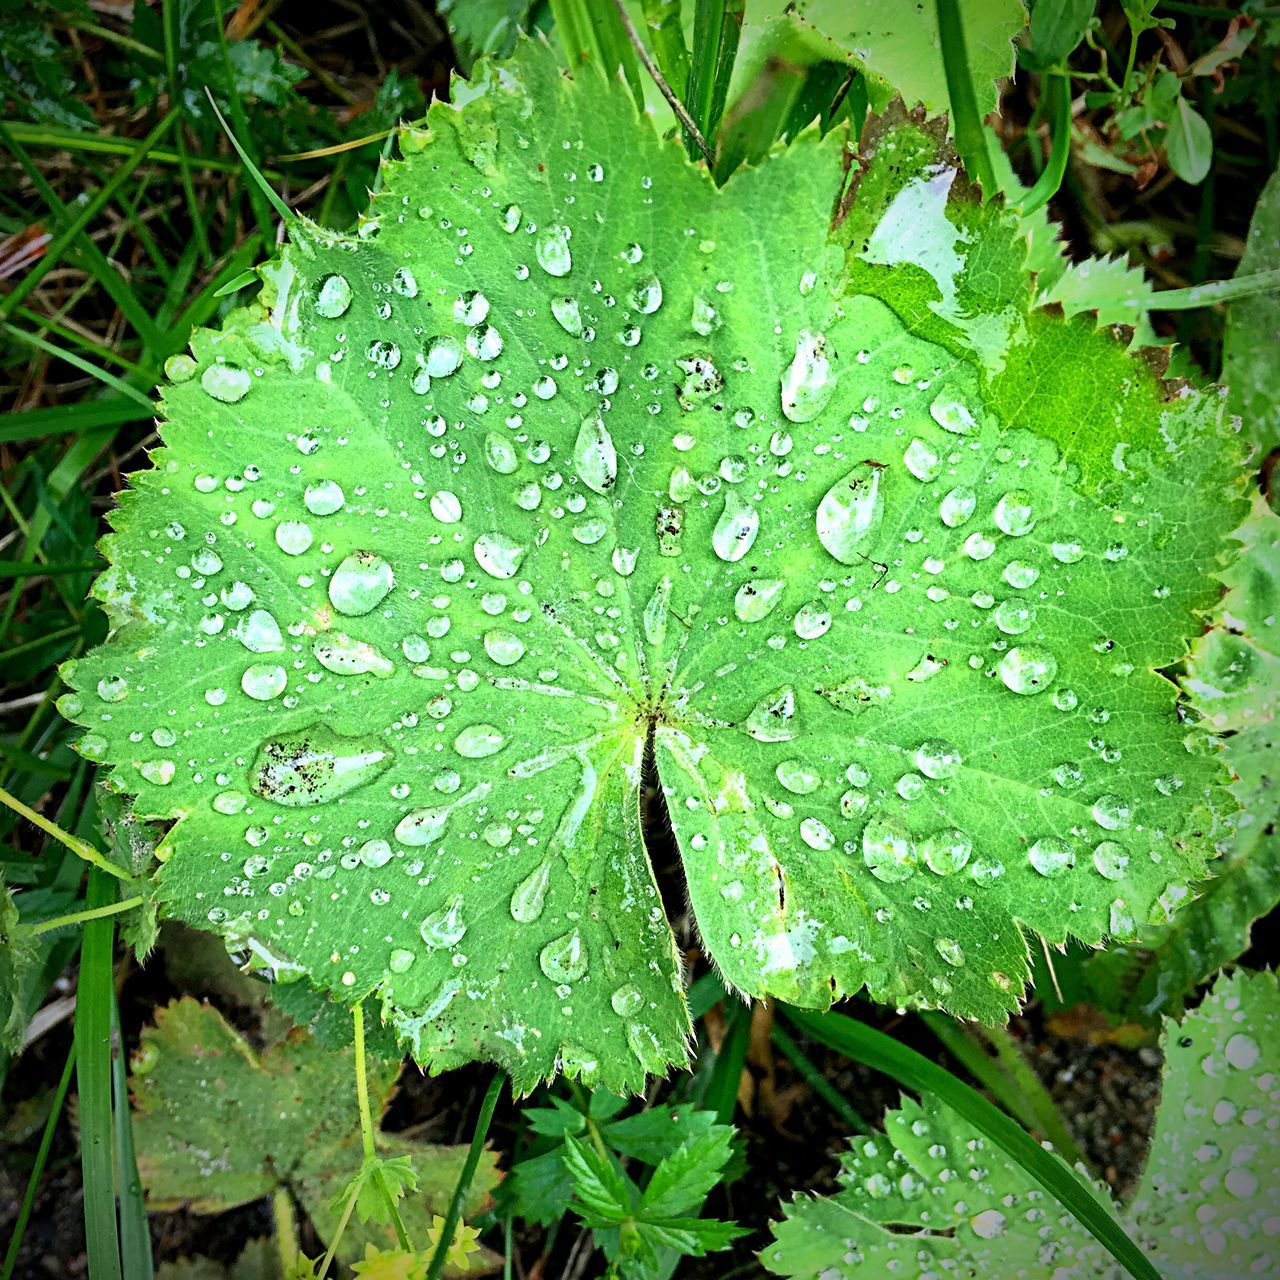 Waterdrops Leaf Nature Nature_collection Green Drops Outside IPhoneography Showcase July Sweden Outside Photography Flowers, Nature And Beauty Leafs Green Leaf Check This Out Taking Photos